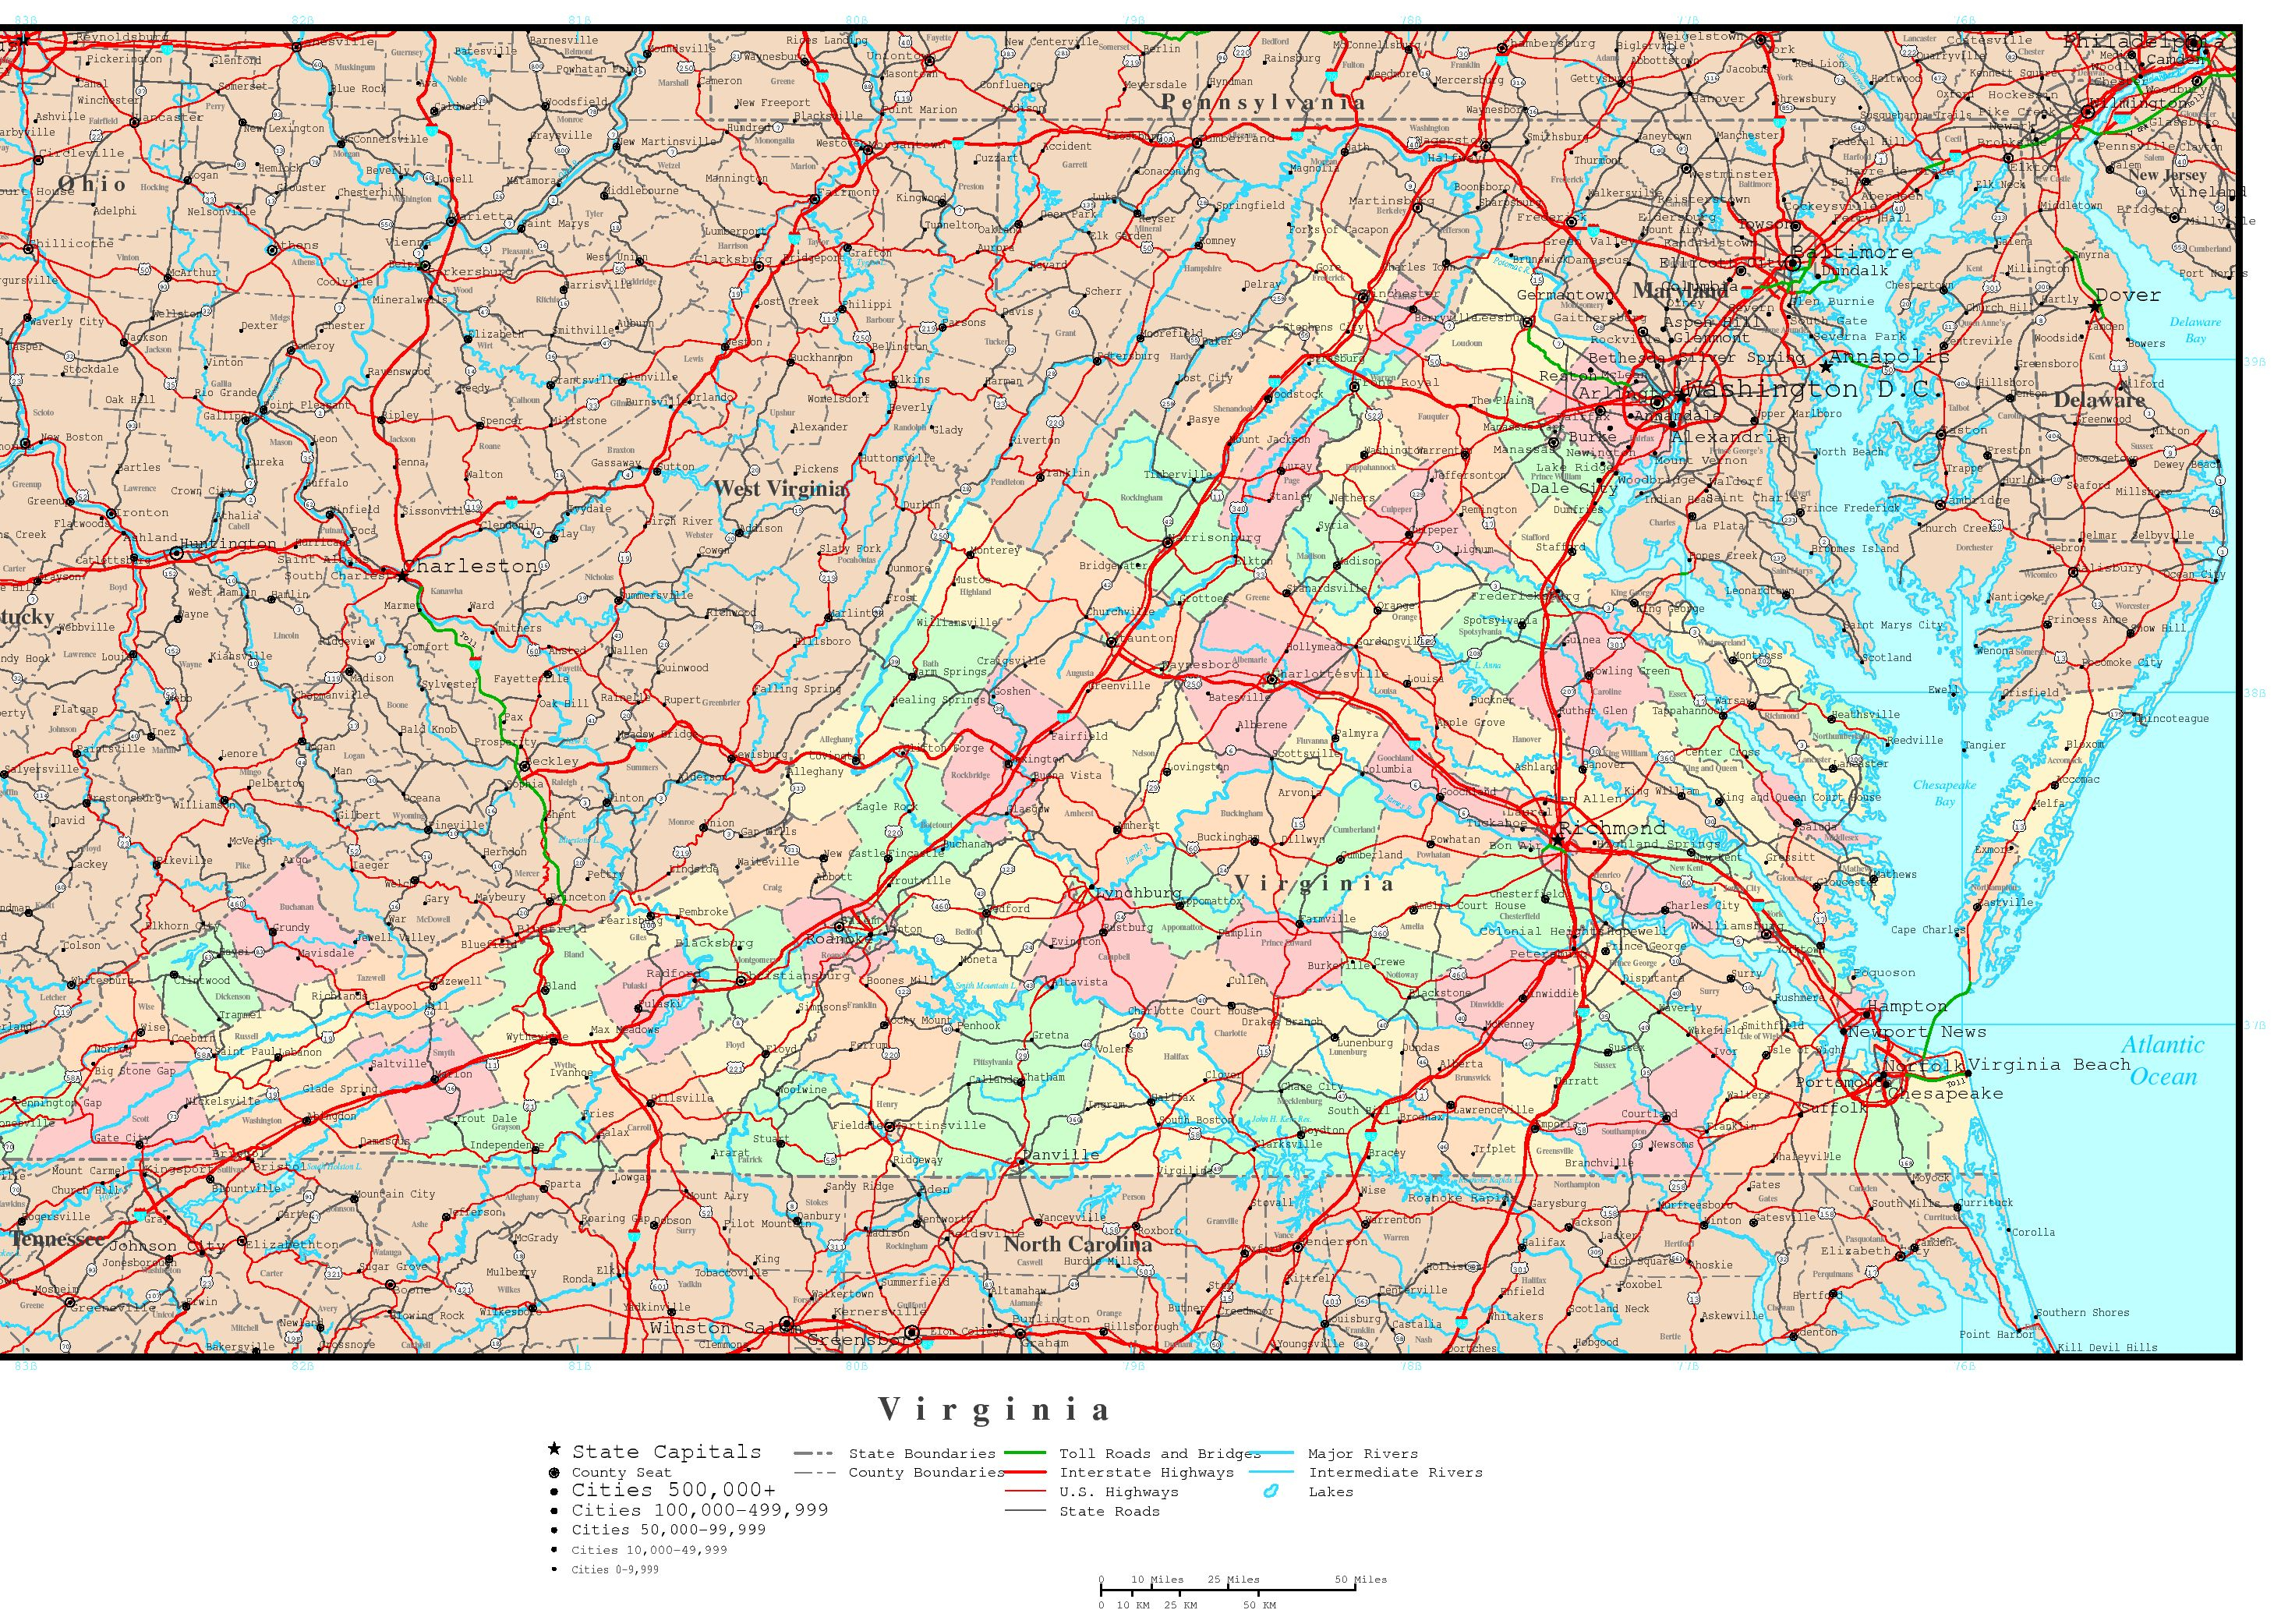 Texas Road Map With Counties And Cities And Travel Information - Map Of Texas Roads And Cities